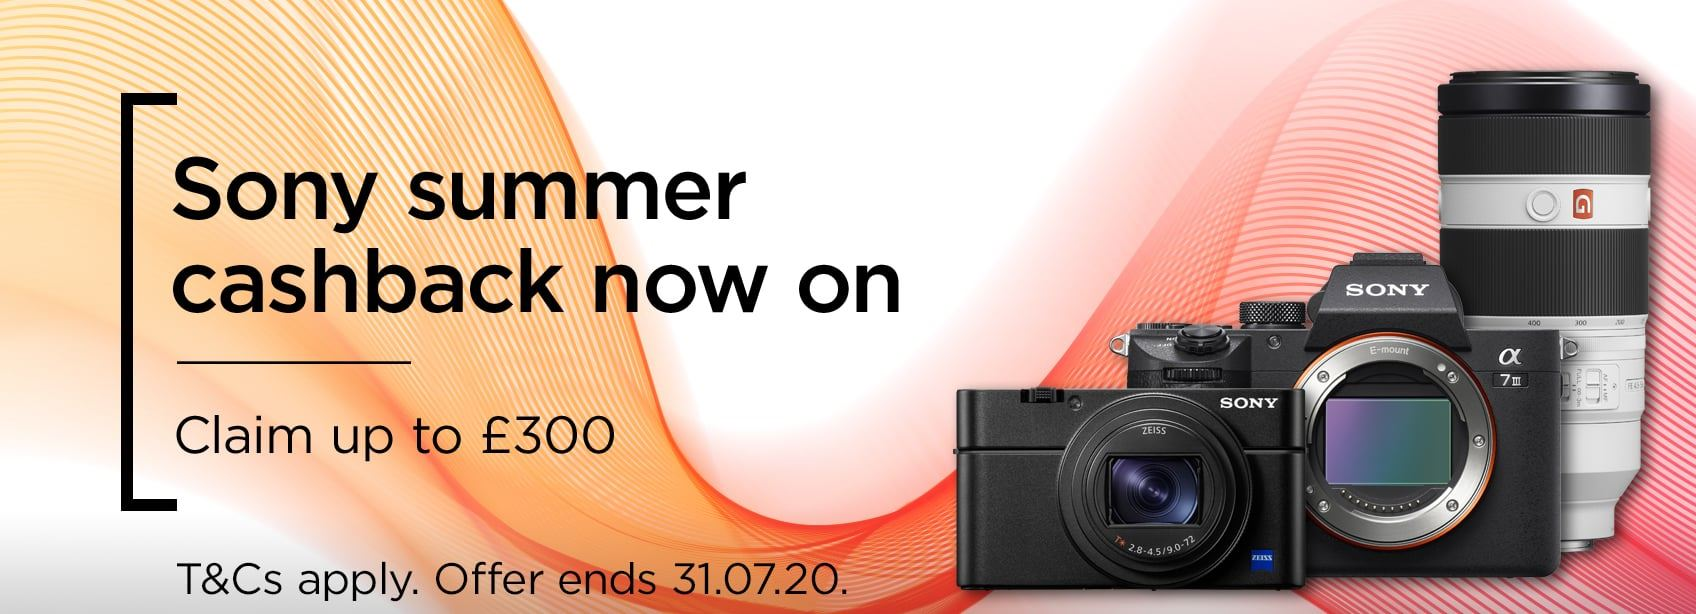 Sony Summer Cashback - Claim up to £300